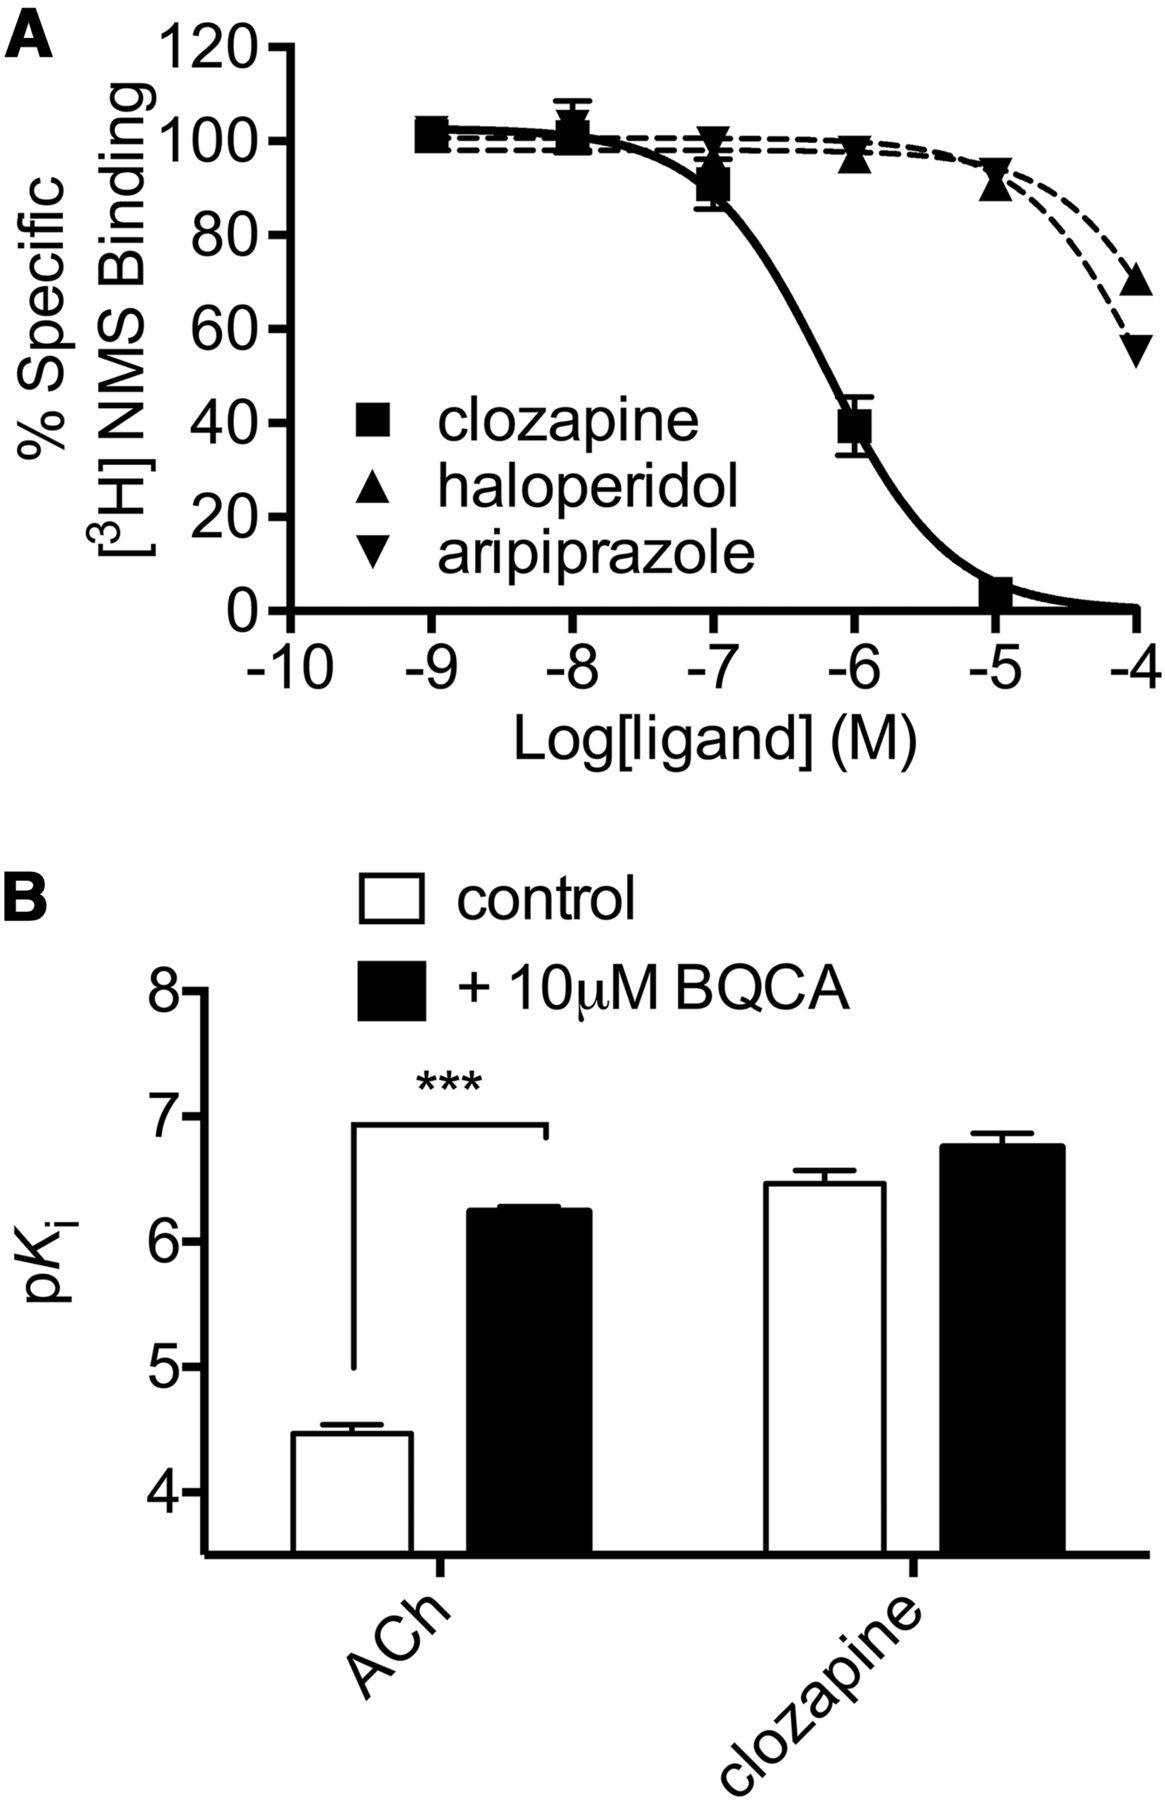 Positive Allosteric Modulation Of The Muscarinic M1 Receptor Home Automation Khcc Installs Latest Control Download Figure